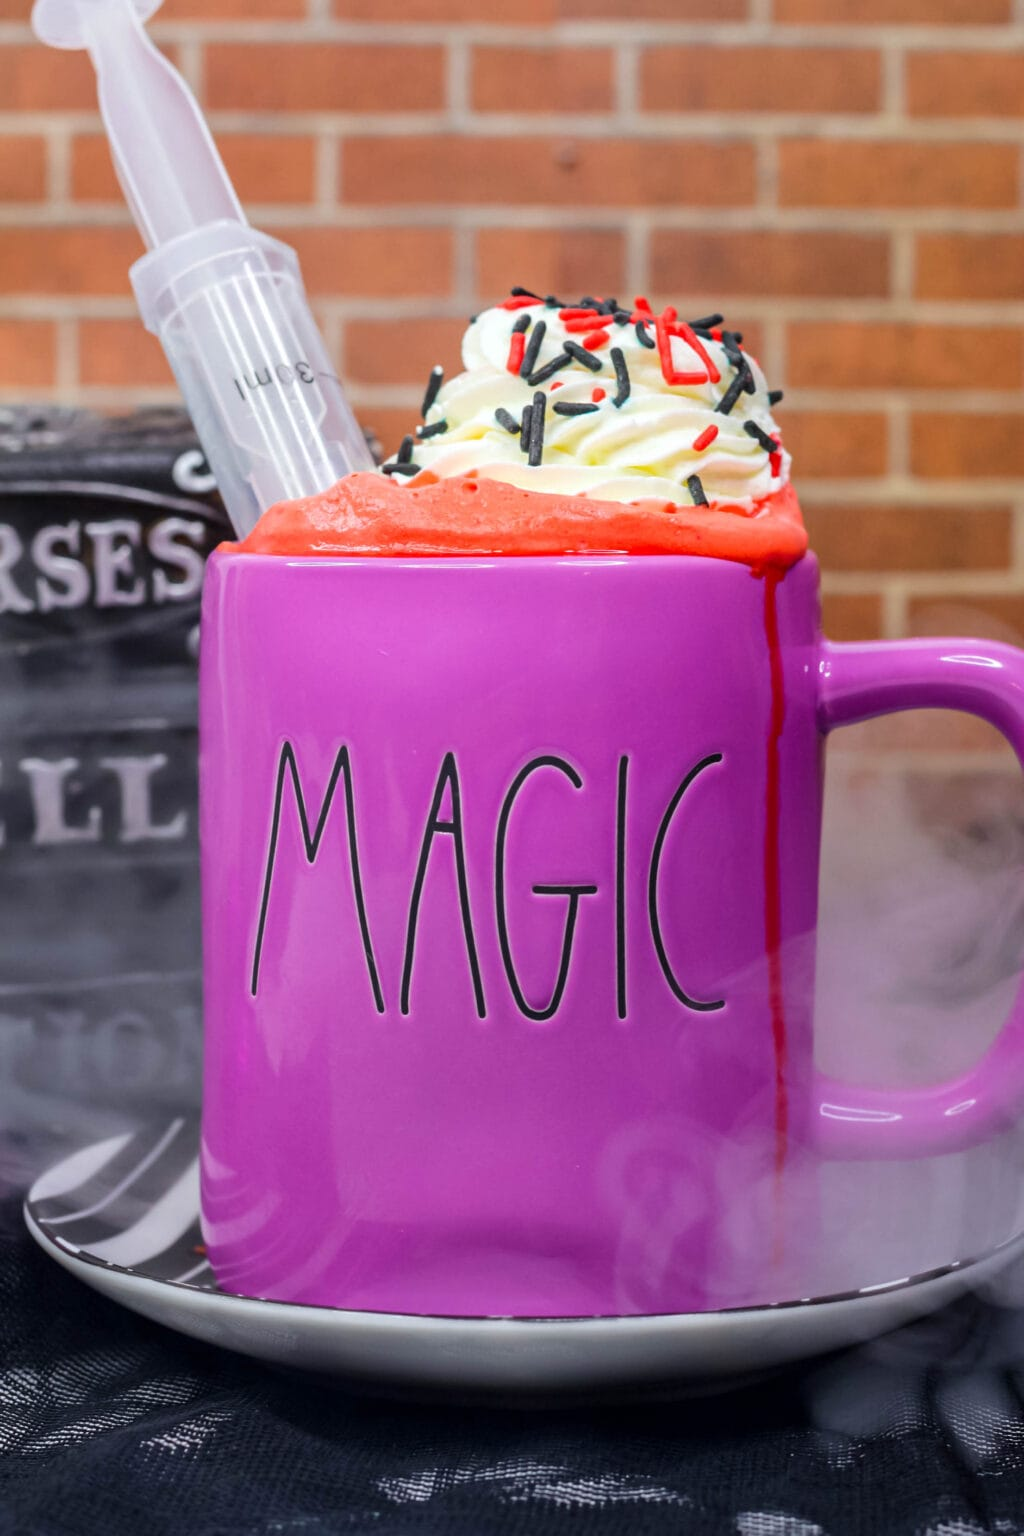 red hot cocoa in a mug with whipped cream and sprinkles on top